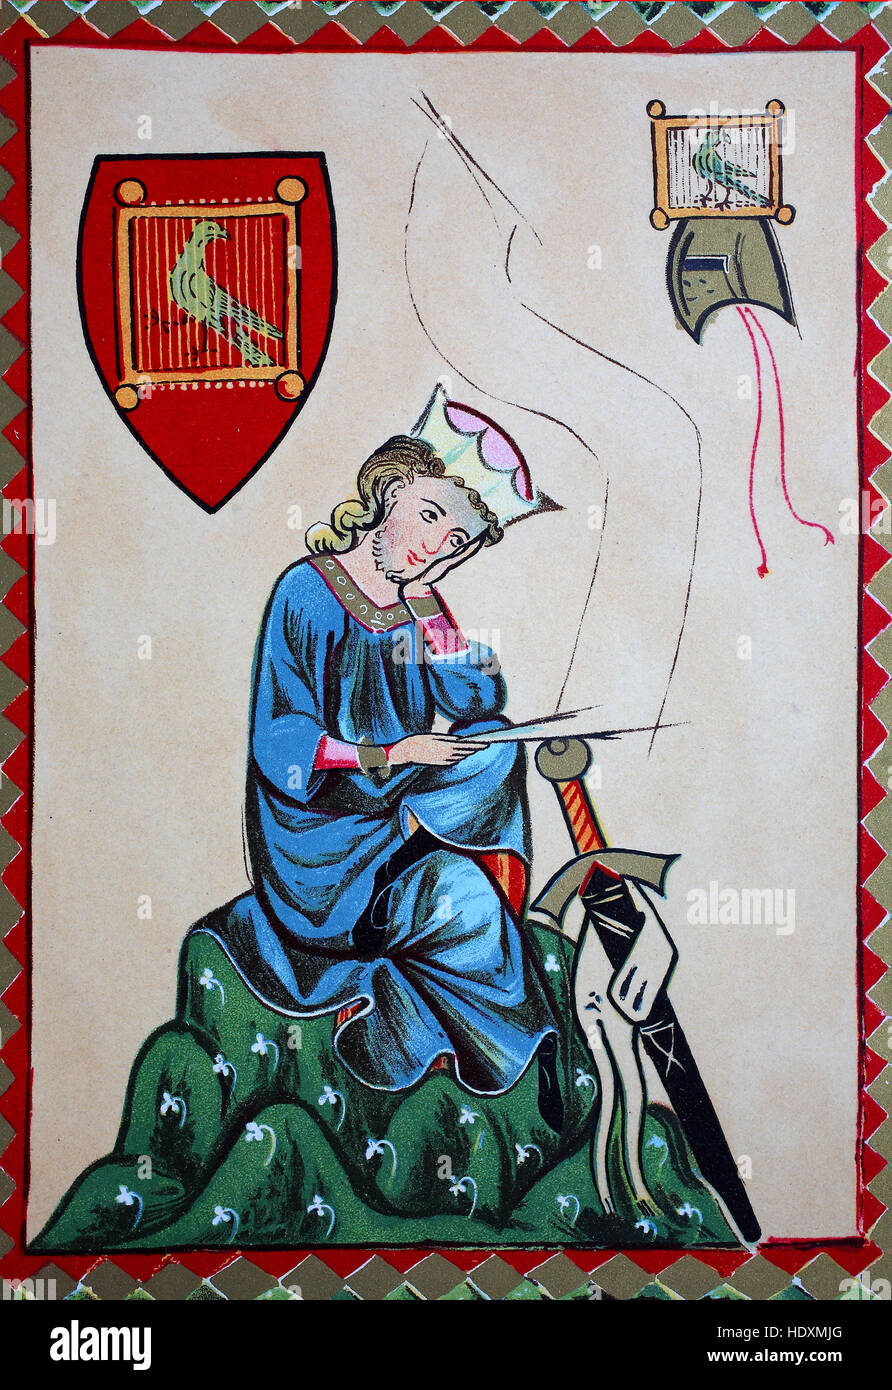 The Middle High German lyric poet, Walther von der Vogelweide, Portrait of him, from the Codex Manesse, Walther - Stock Image